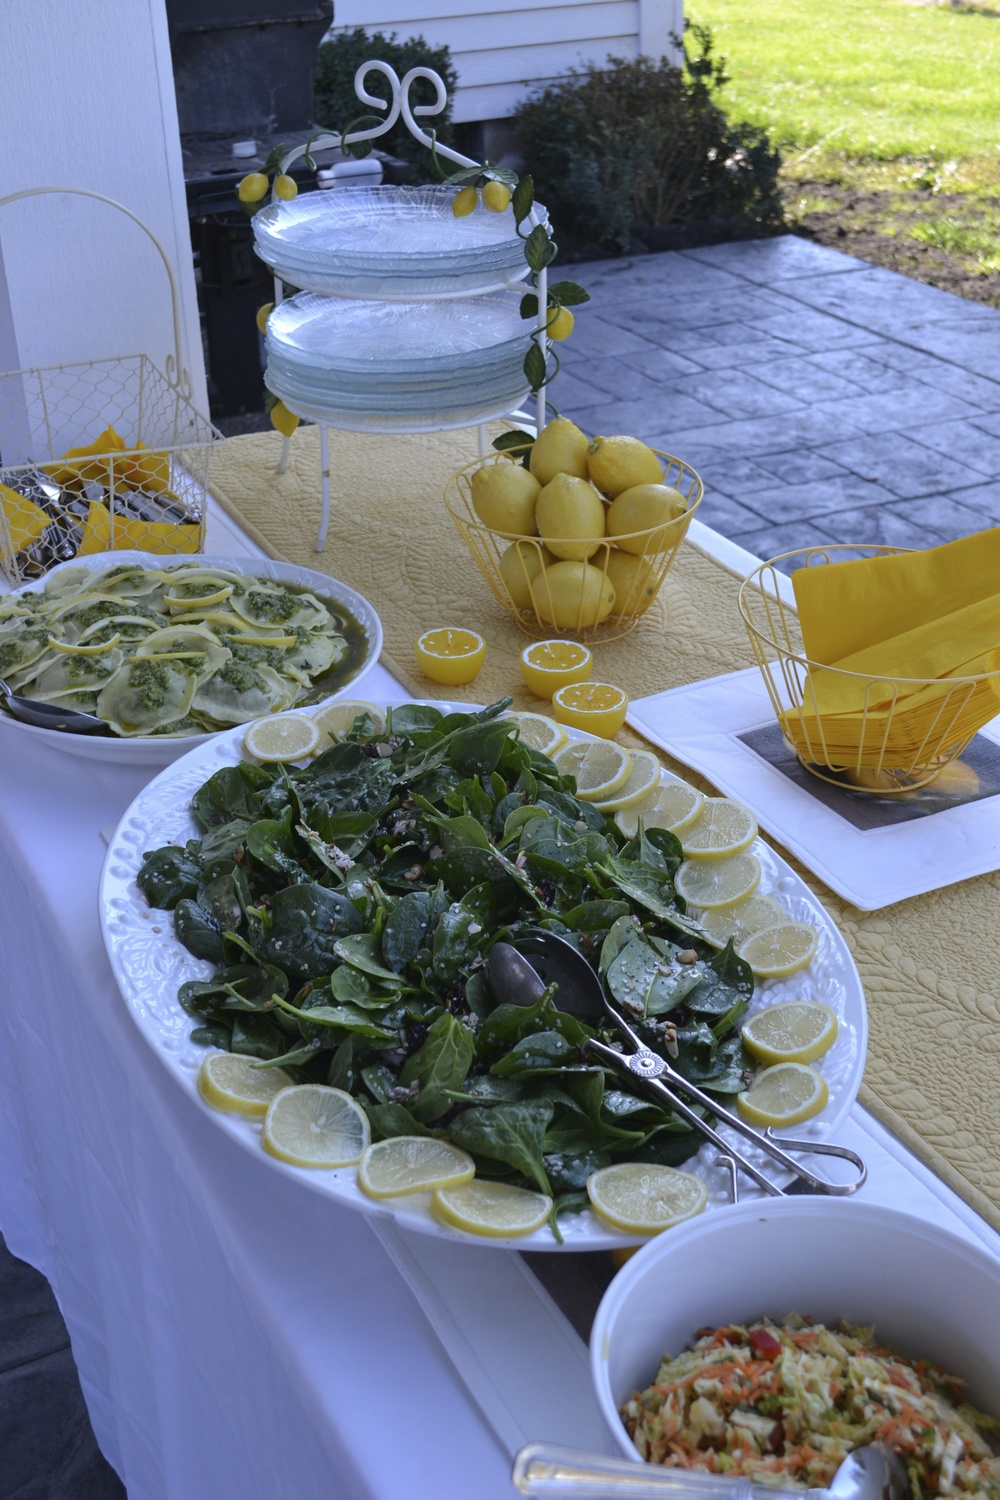 This photo is not of the Lemon Chicken meal, but gives you an idea of how to set out a lemon themed buffet dinner and how to garnish the plate.